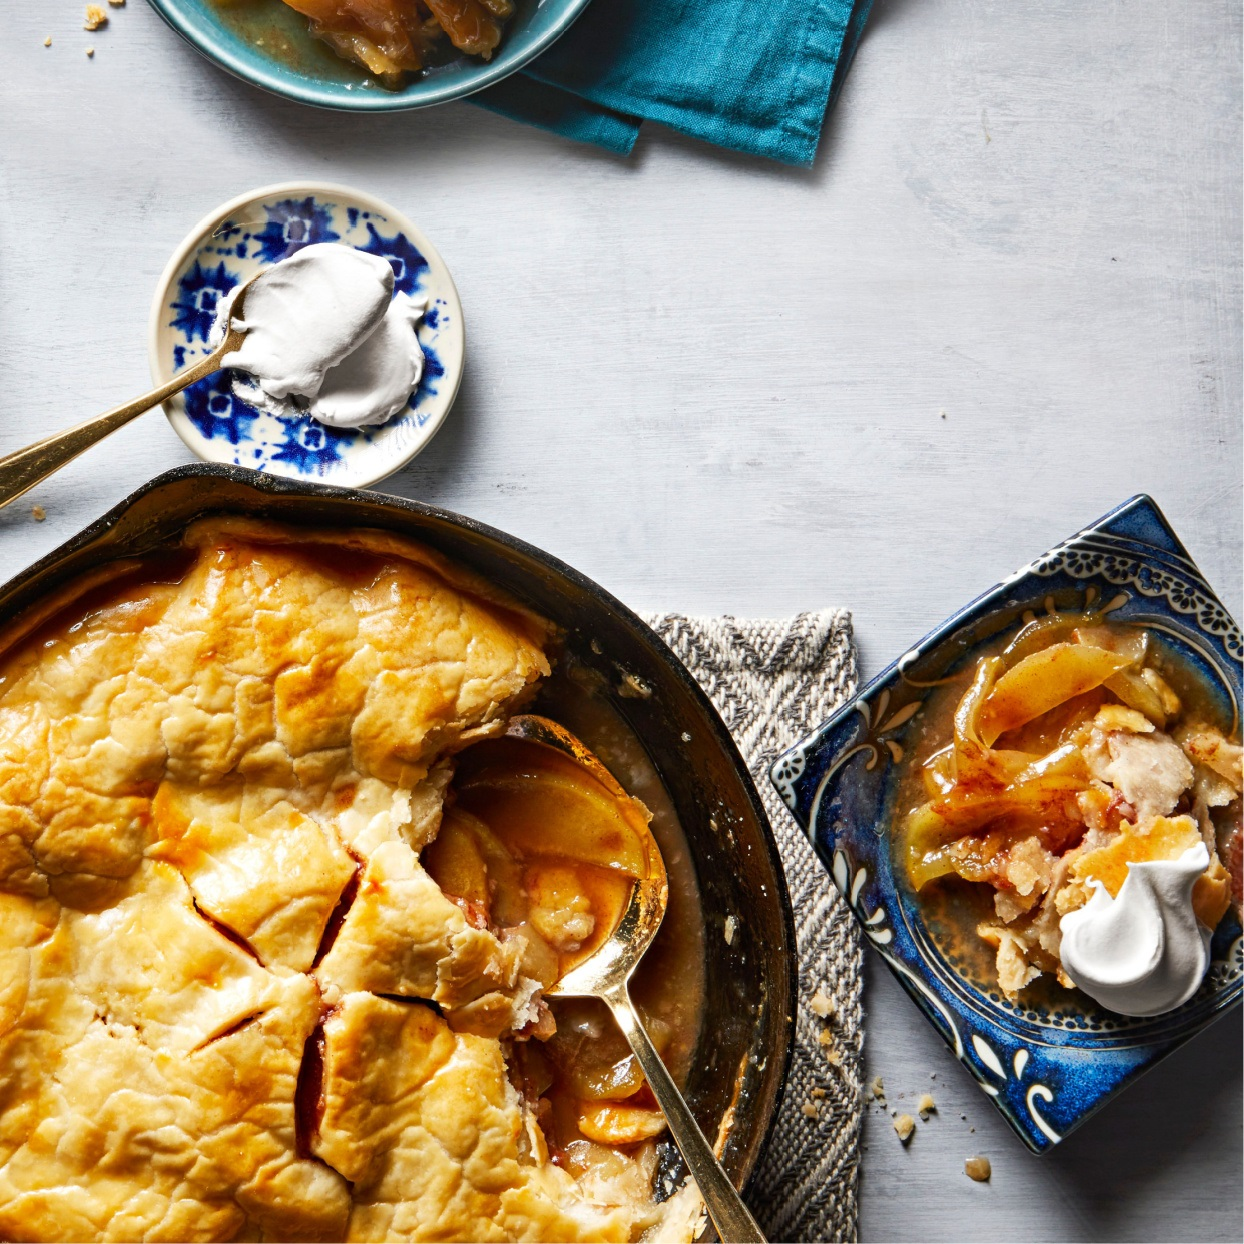 apple pie baked in a cast iron skillet